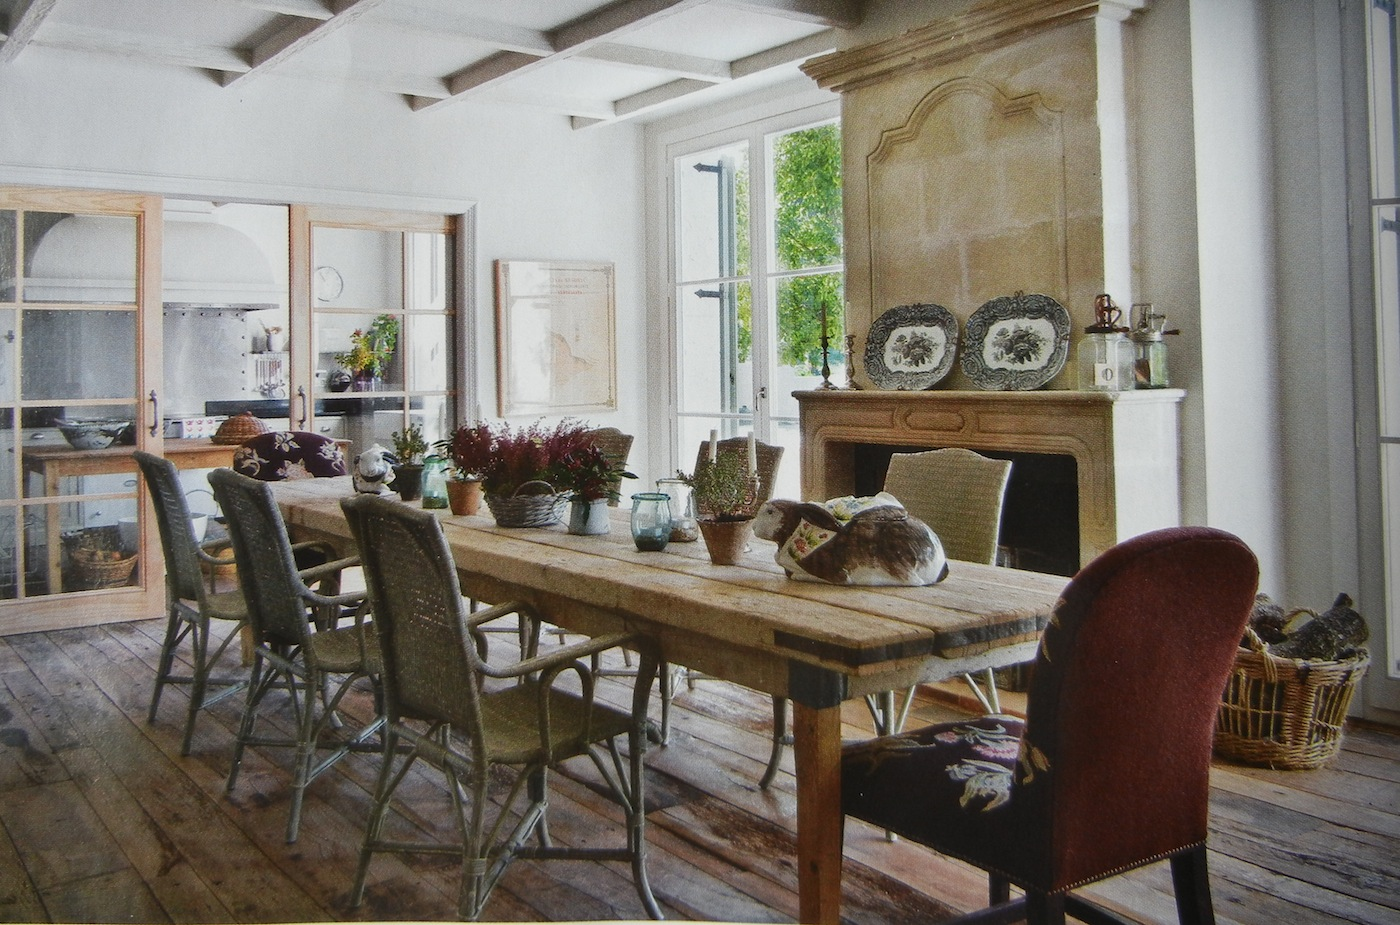 Auction decorating rustic dining tables in spain for Dining room decorating ideas rustic